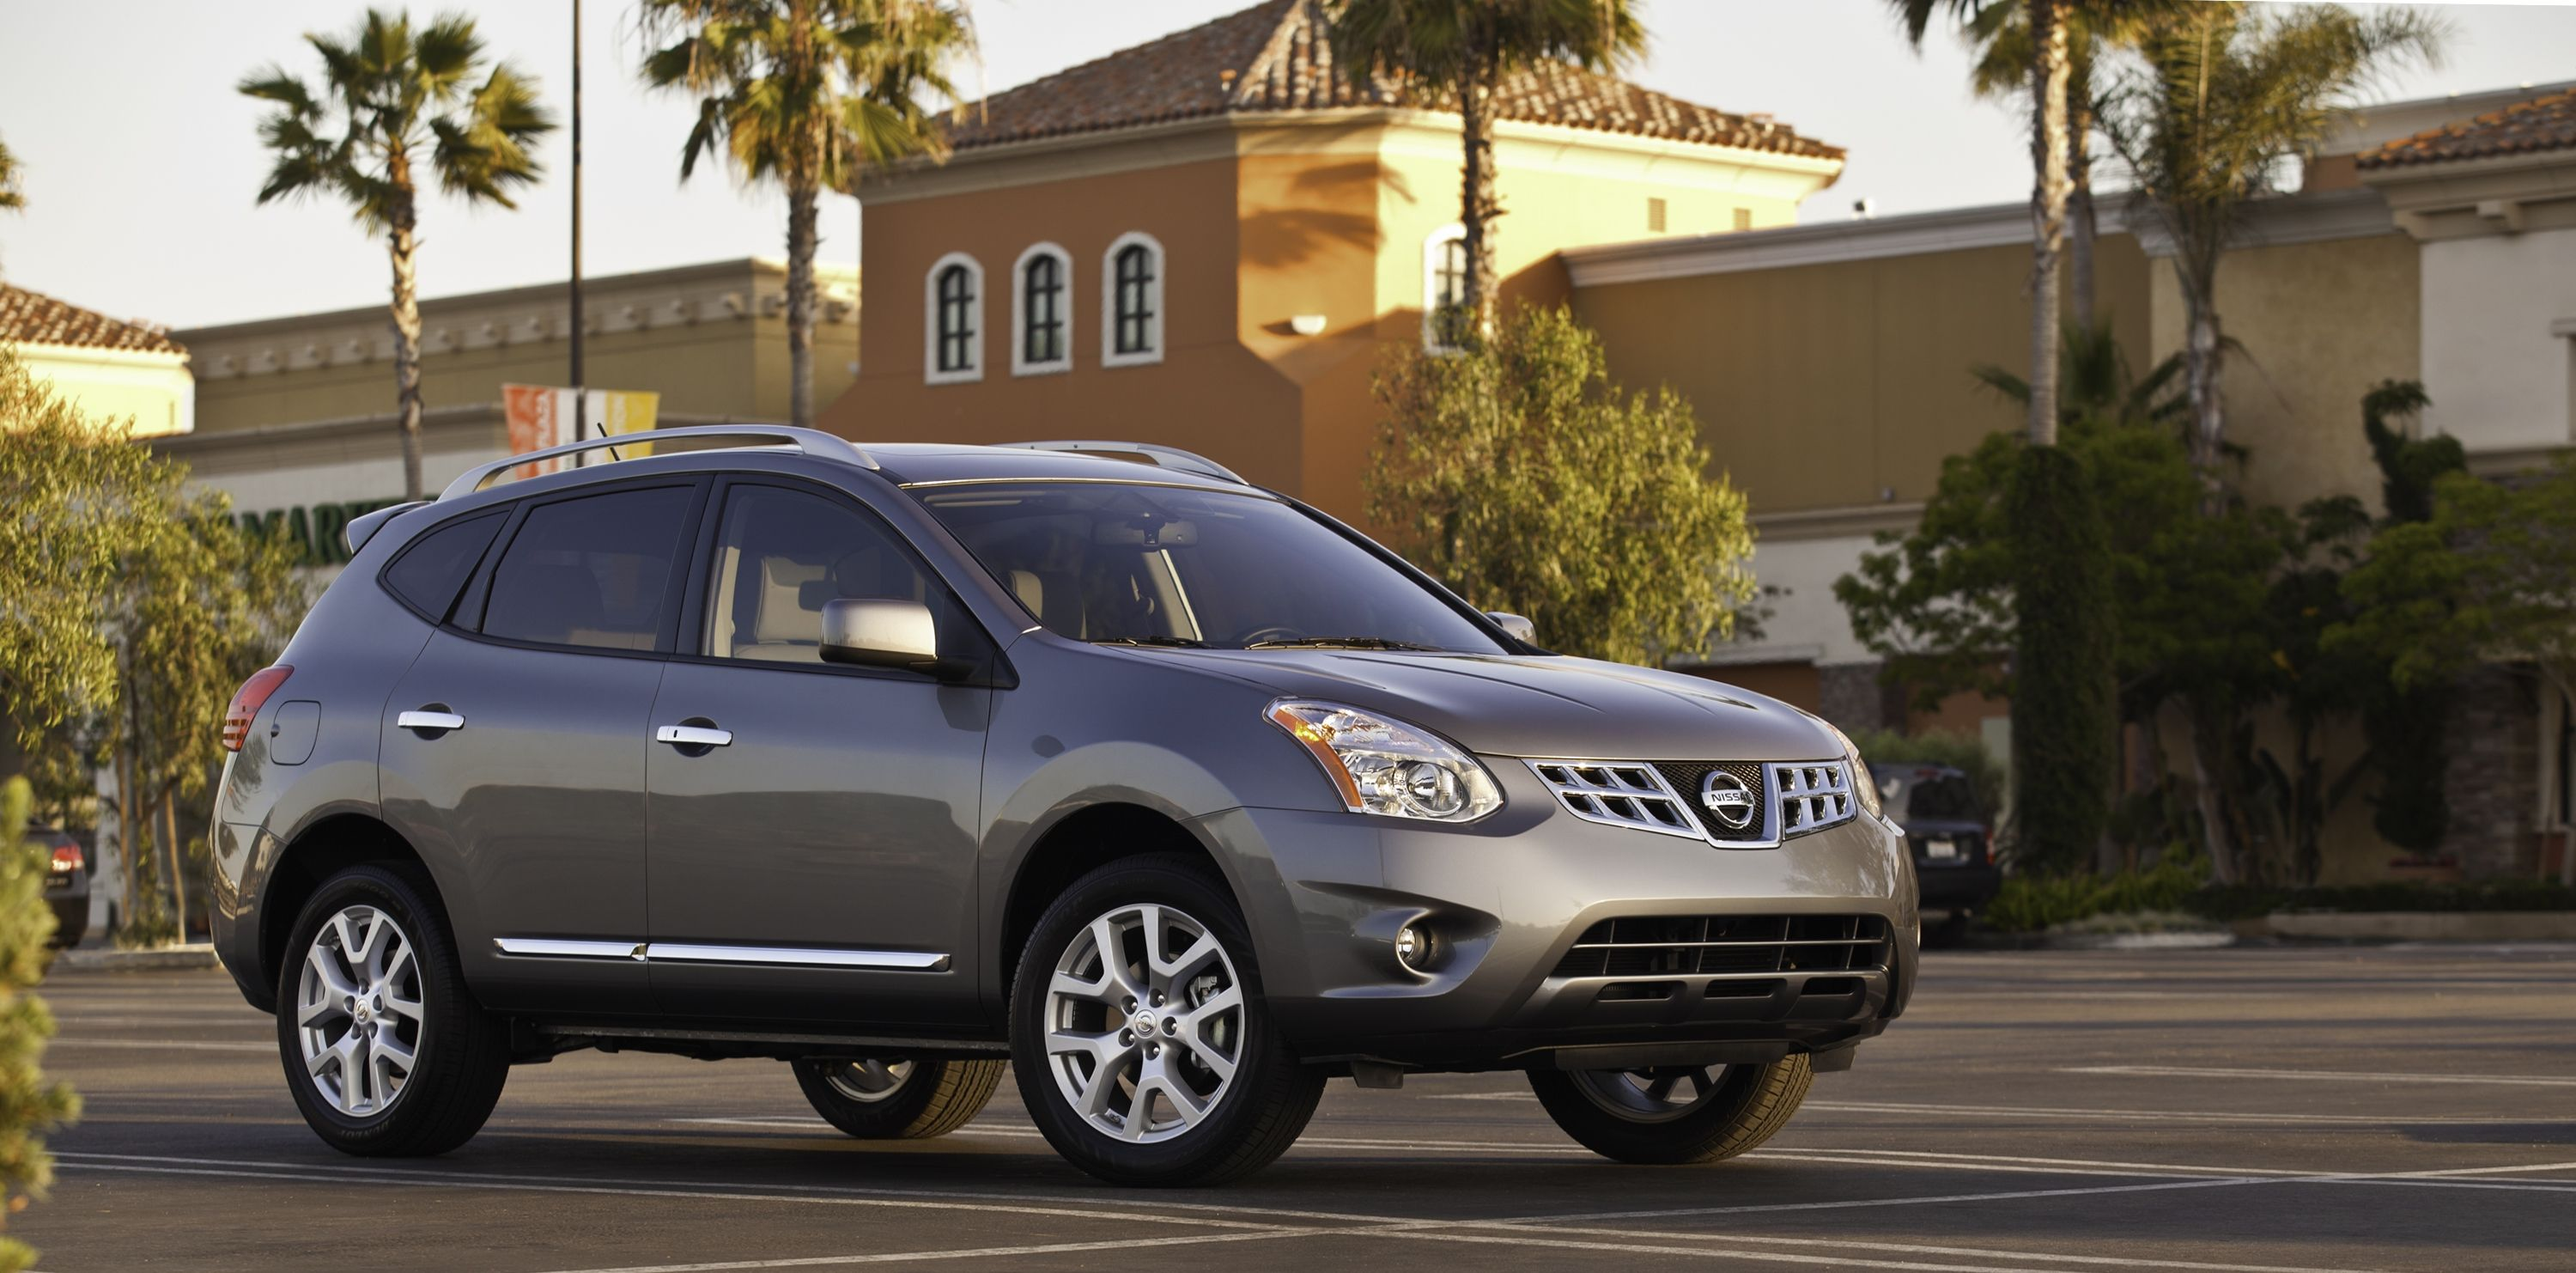 auto separate issues news recalled for nissan murano rogue select